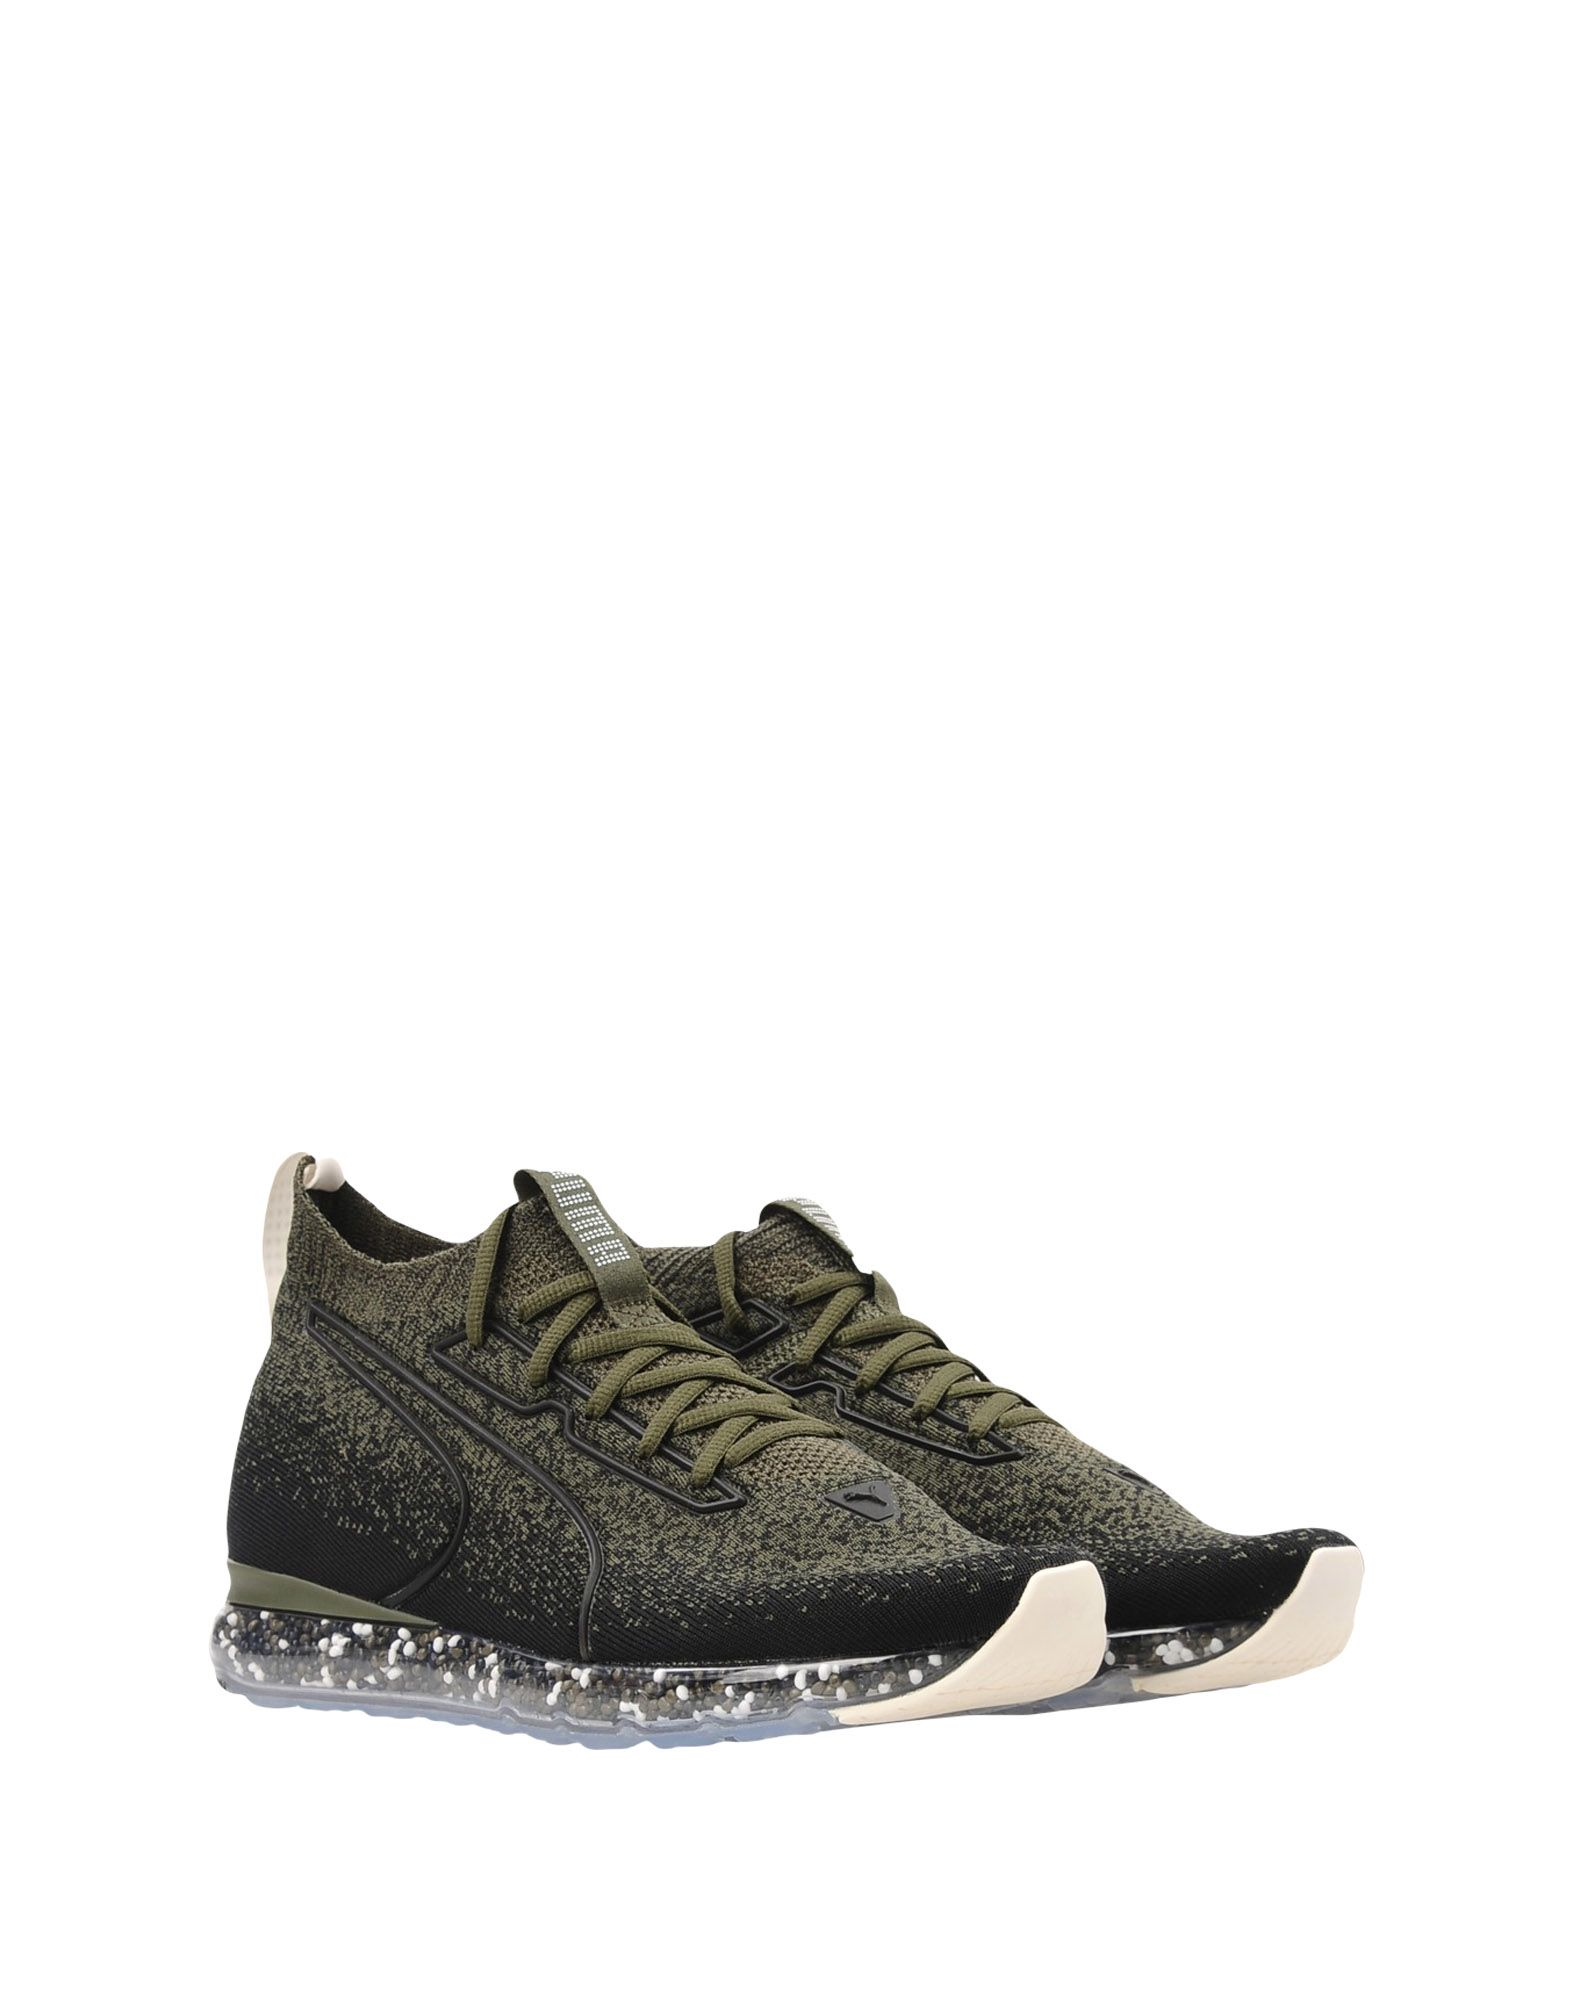 ... Sneakers Puma Jamming Evoknit - Homme - Sneakers Puma sur